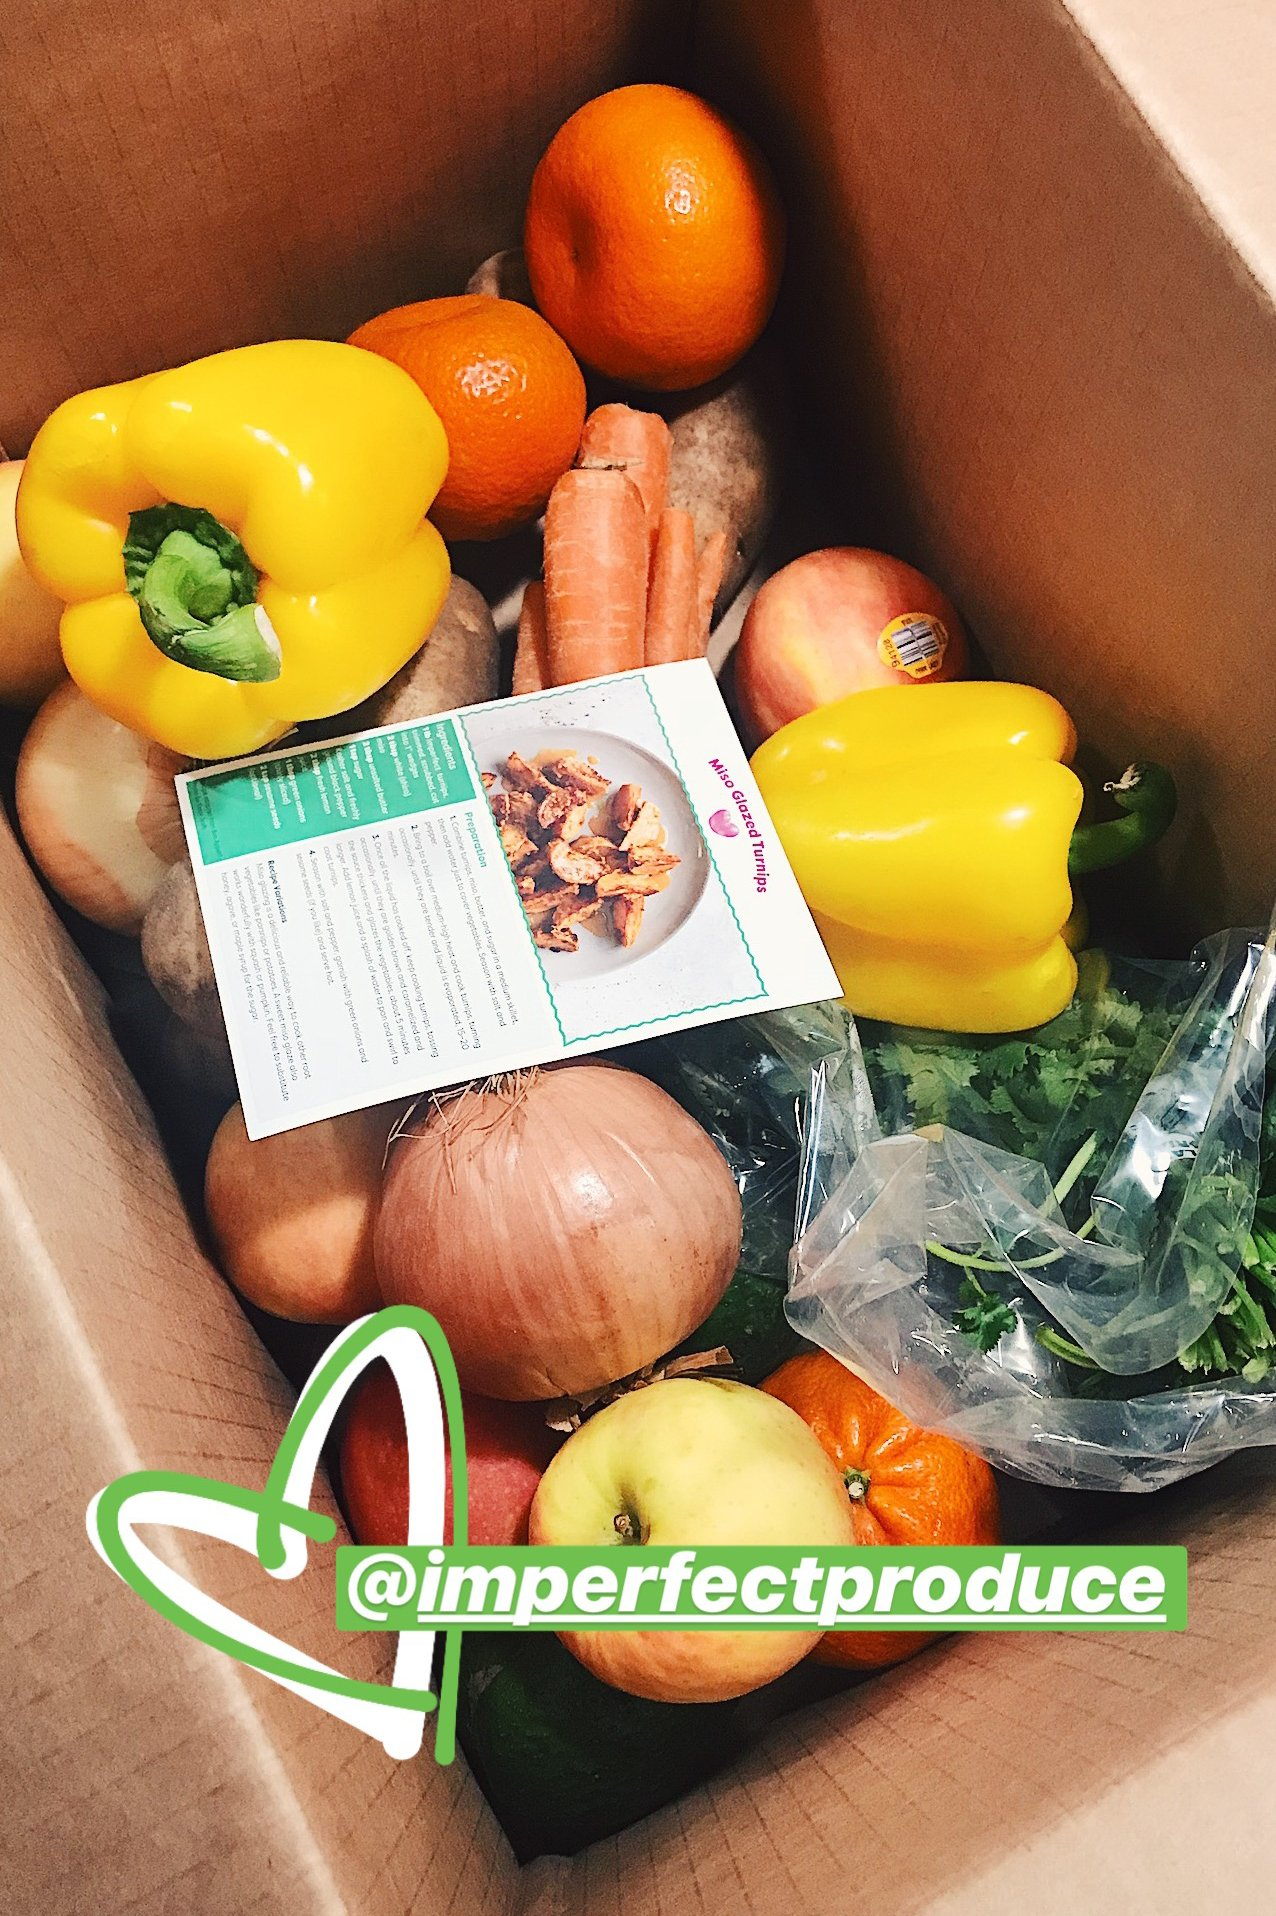 A box of fresh produce from Imperfect Produce.